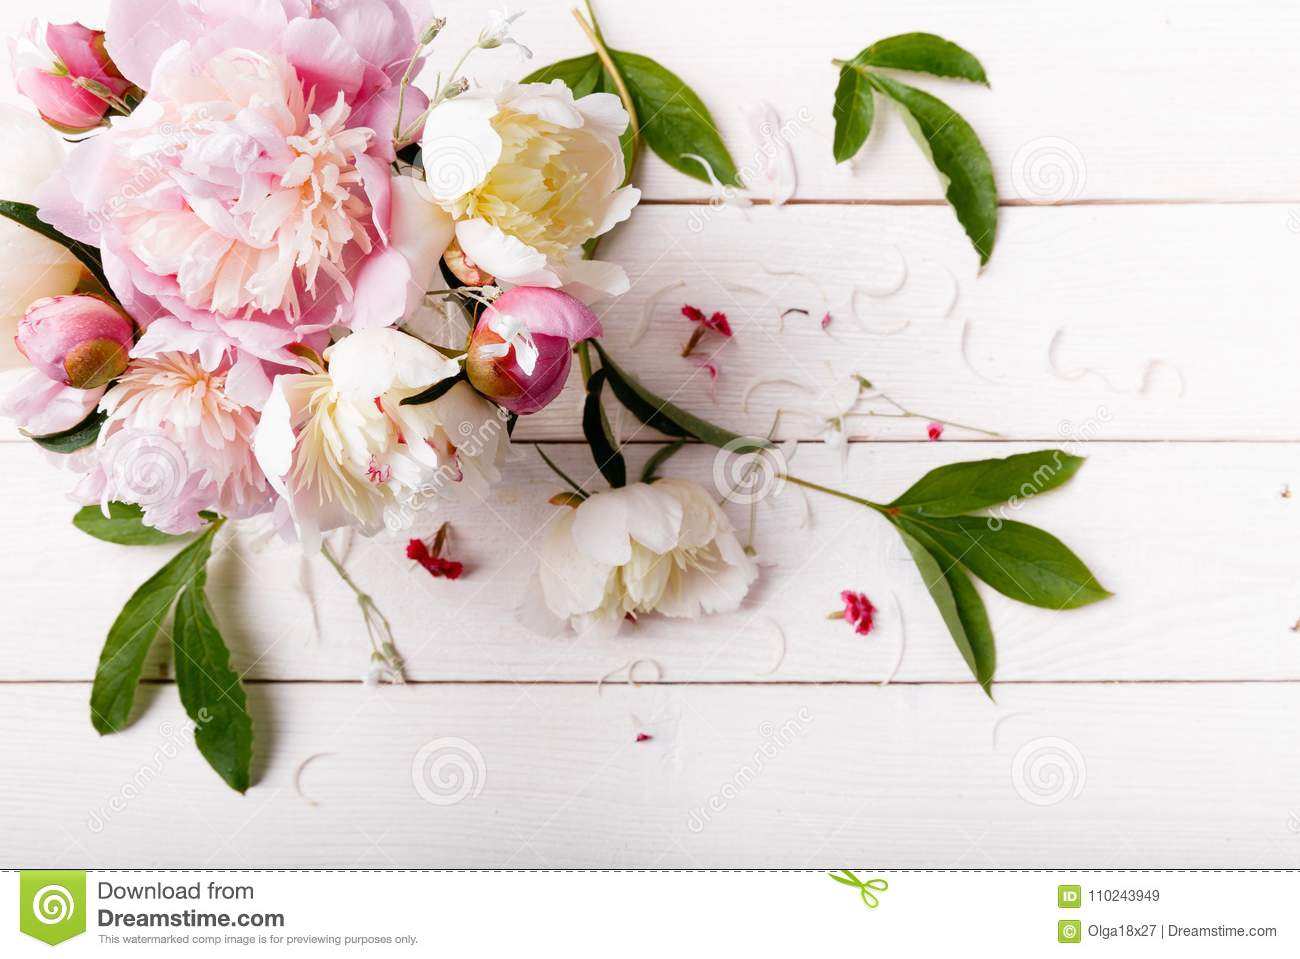 Delicate white pink peony with petals flowers and white ribbon on wooden board. Overhead top view, flat lay. Copy space. Birthday,